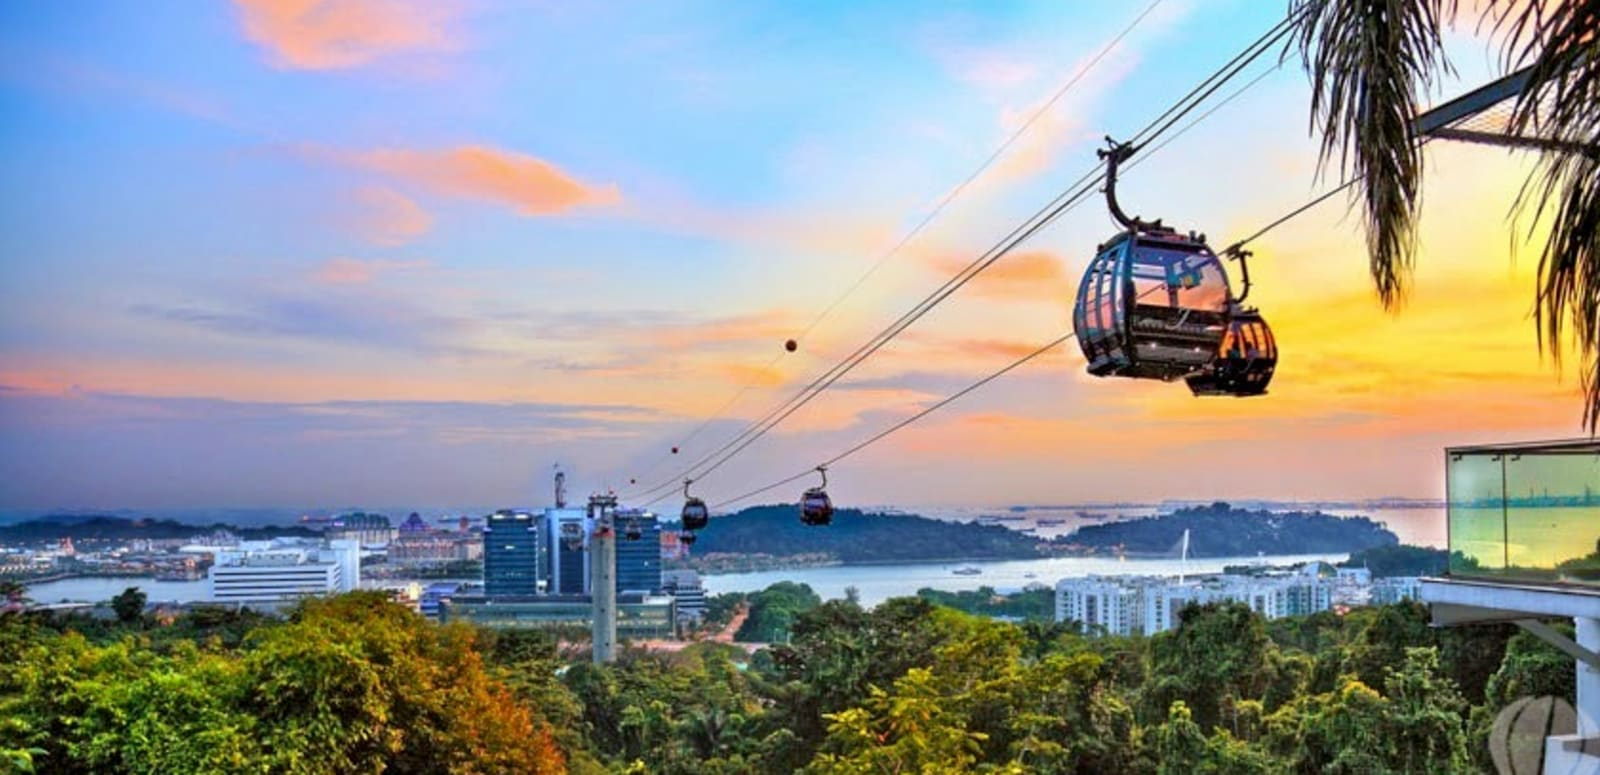 Singapore Cable Car Ride | Buy Online & Get 25% Off